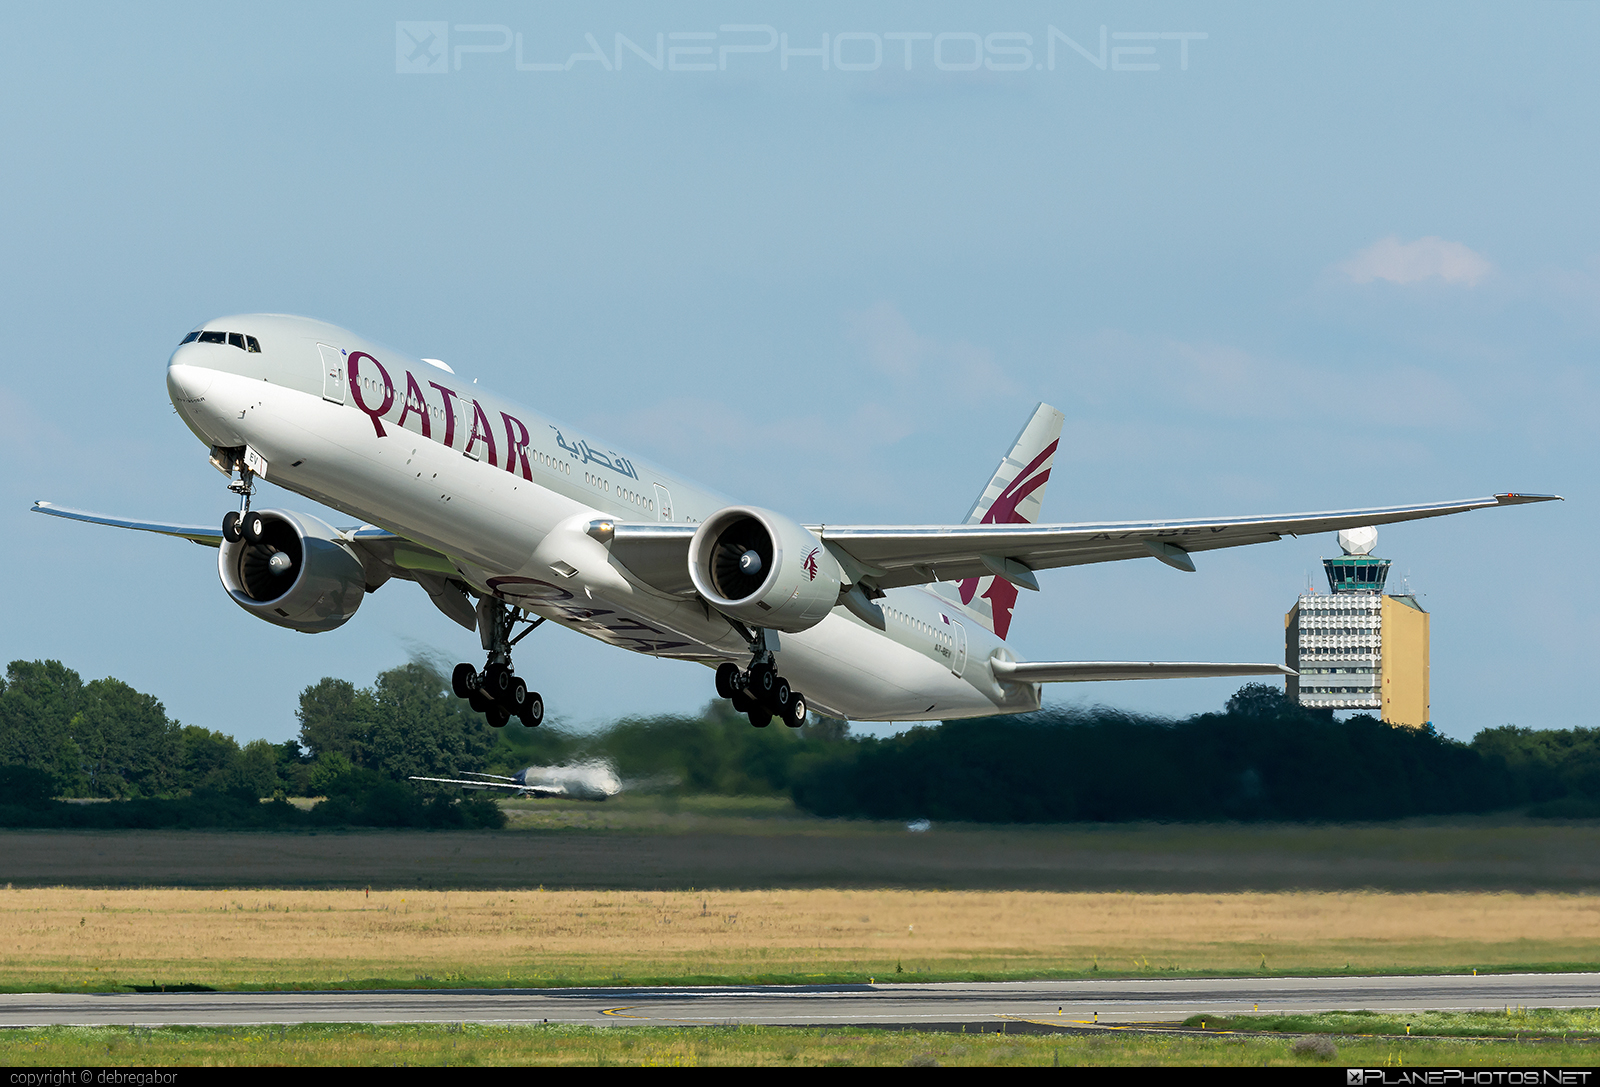 Boeing 777-300ER - A7-BEV operated by Qatar Airways #b777 #b777er #boeing #boeing777 #qatarairways #tripleseven